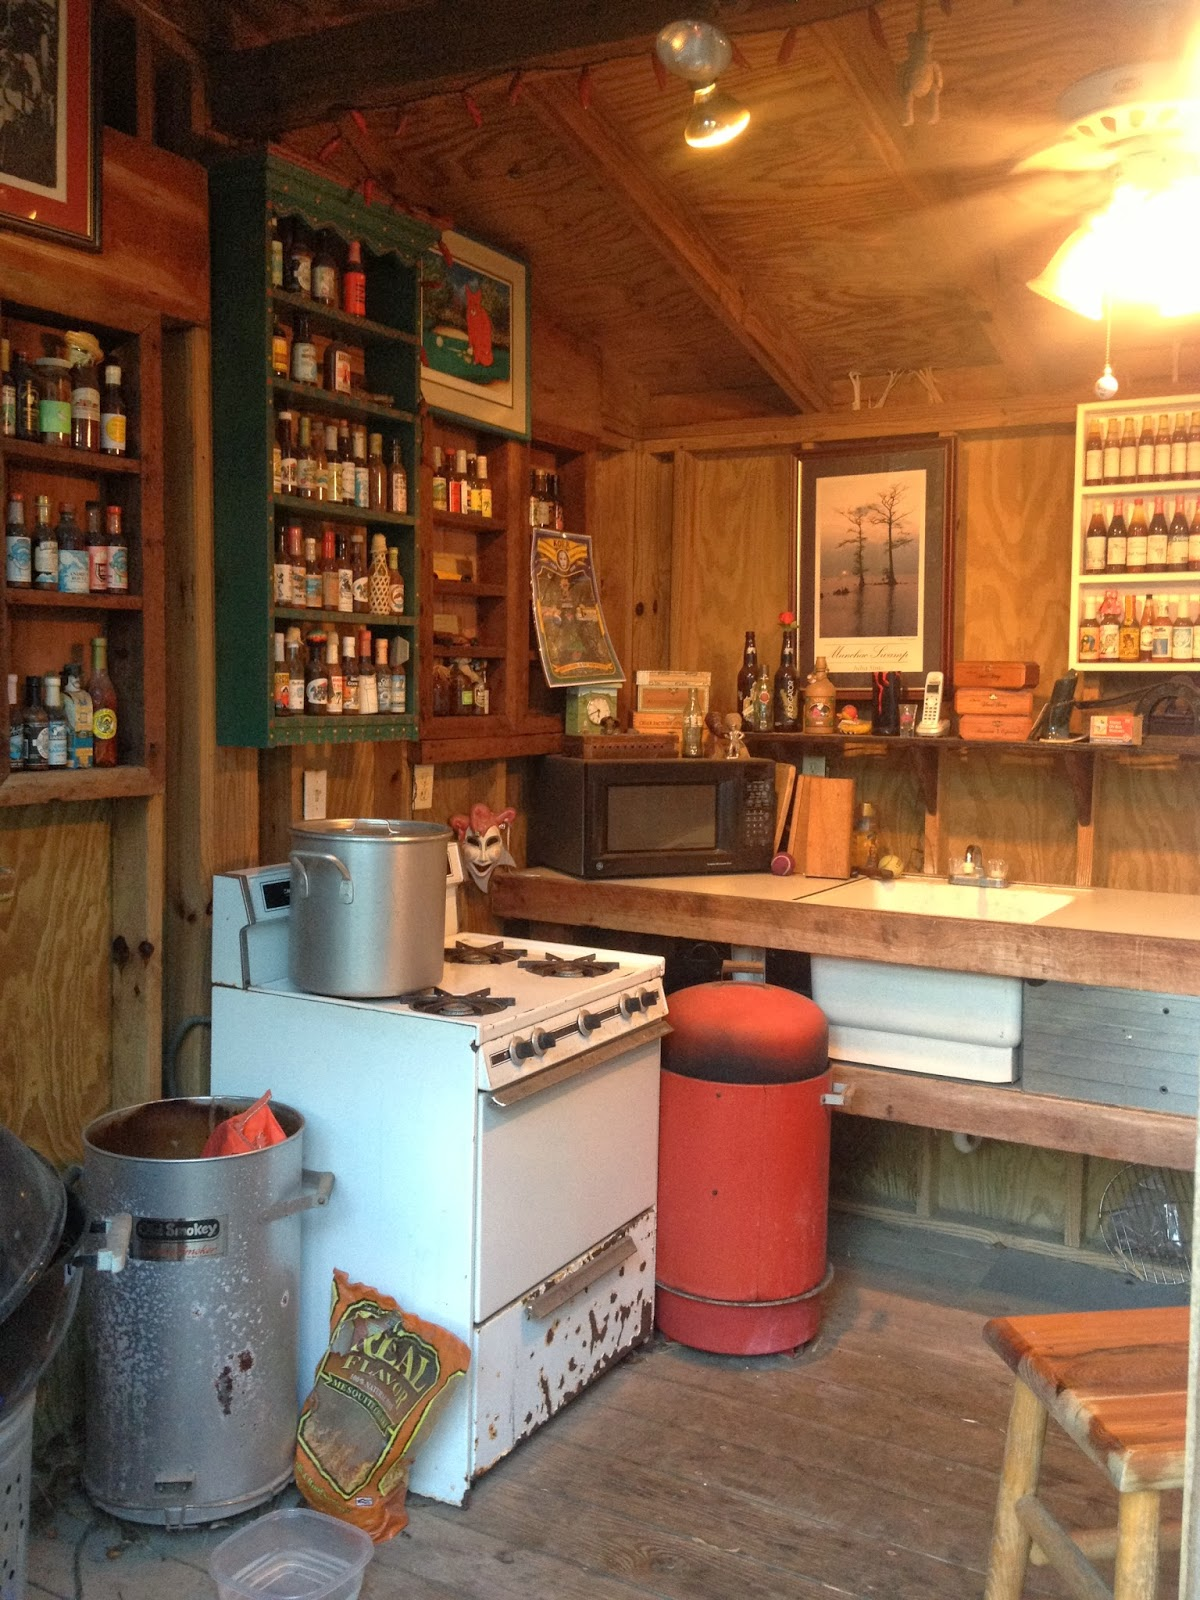 114 Fels Ave., Fairhope: Cajun outdoor cook shed